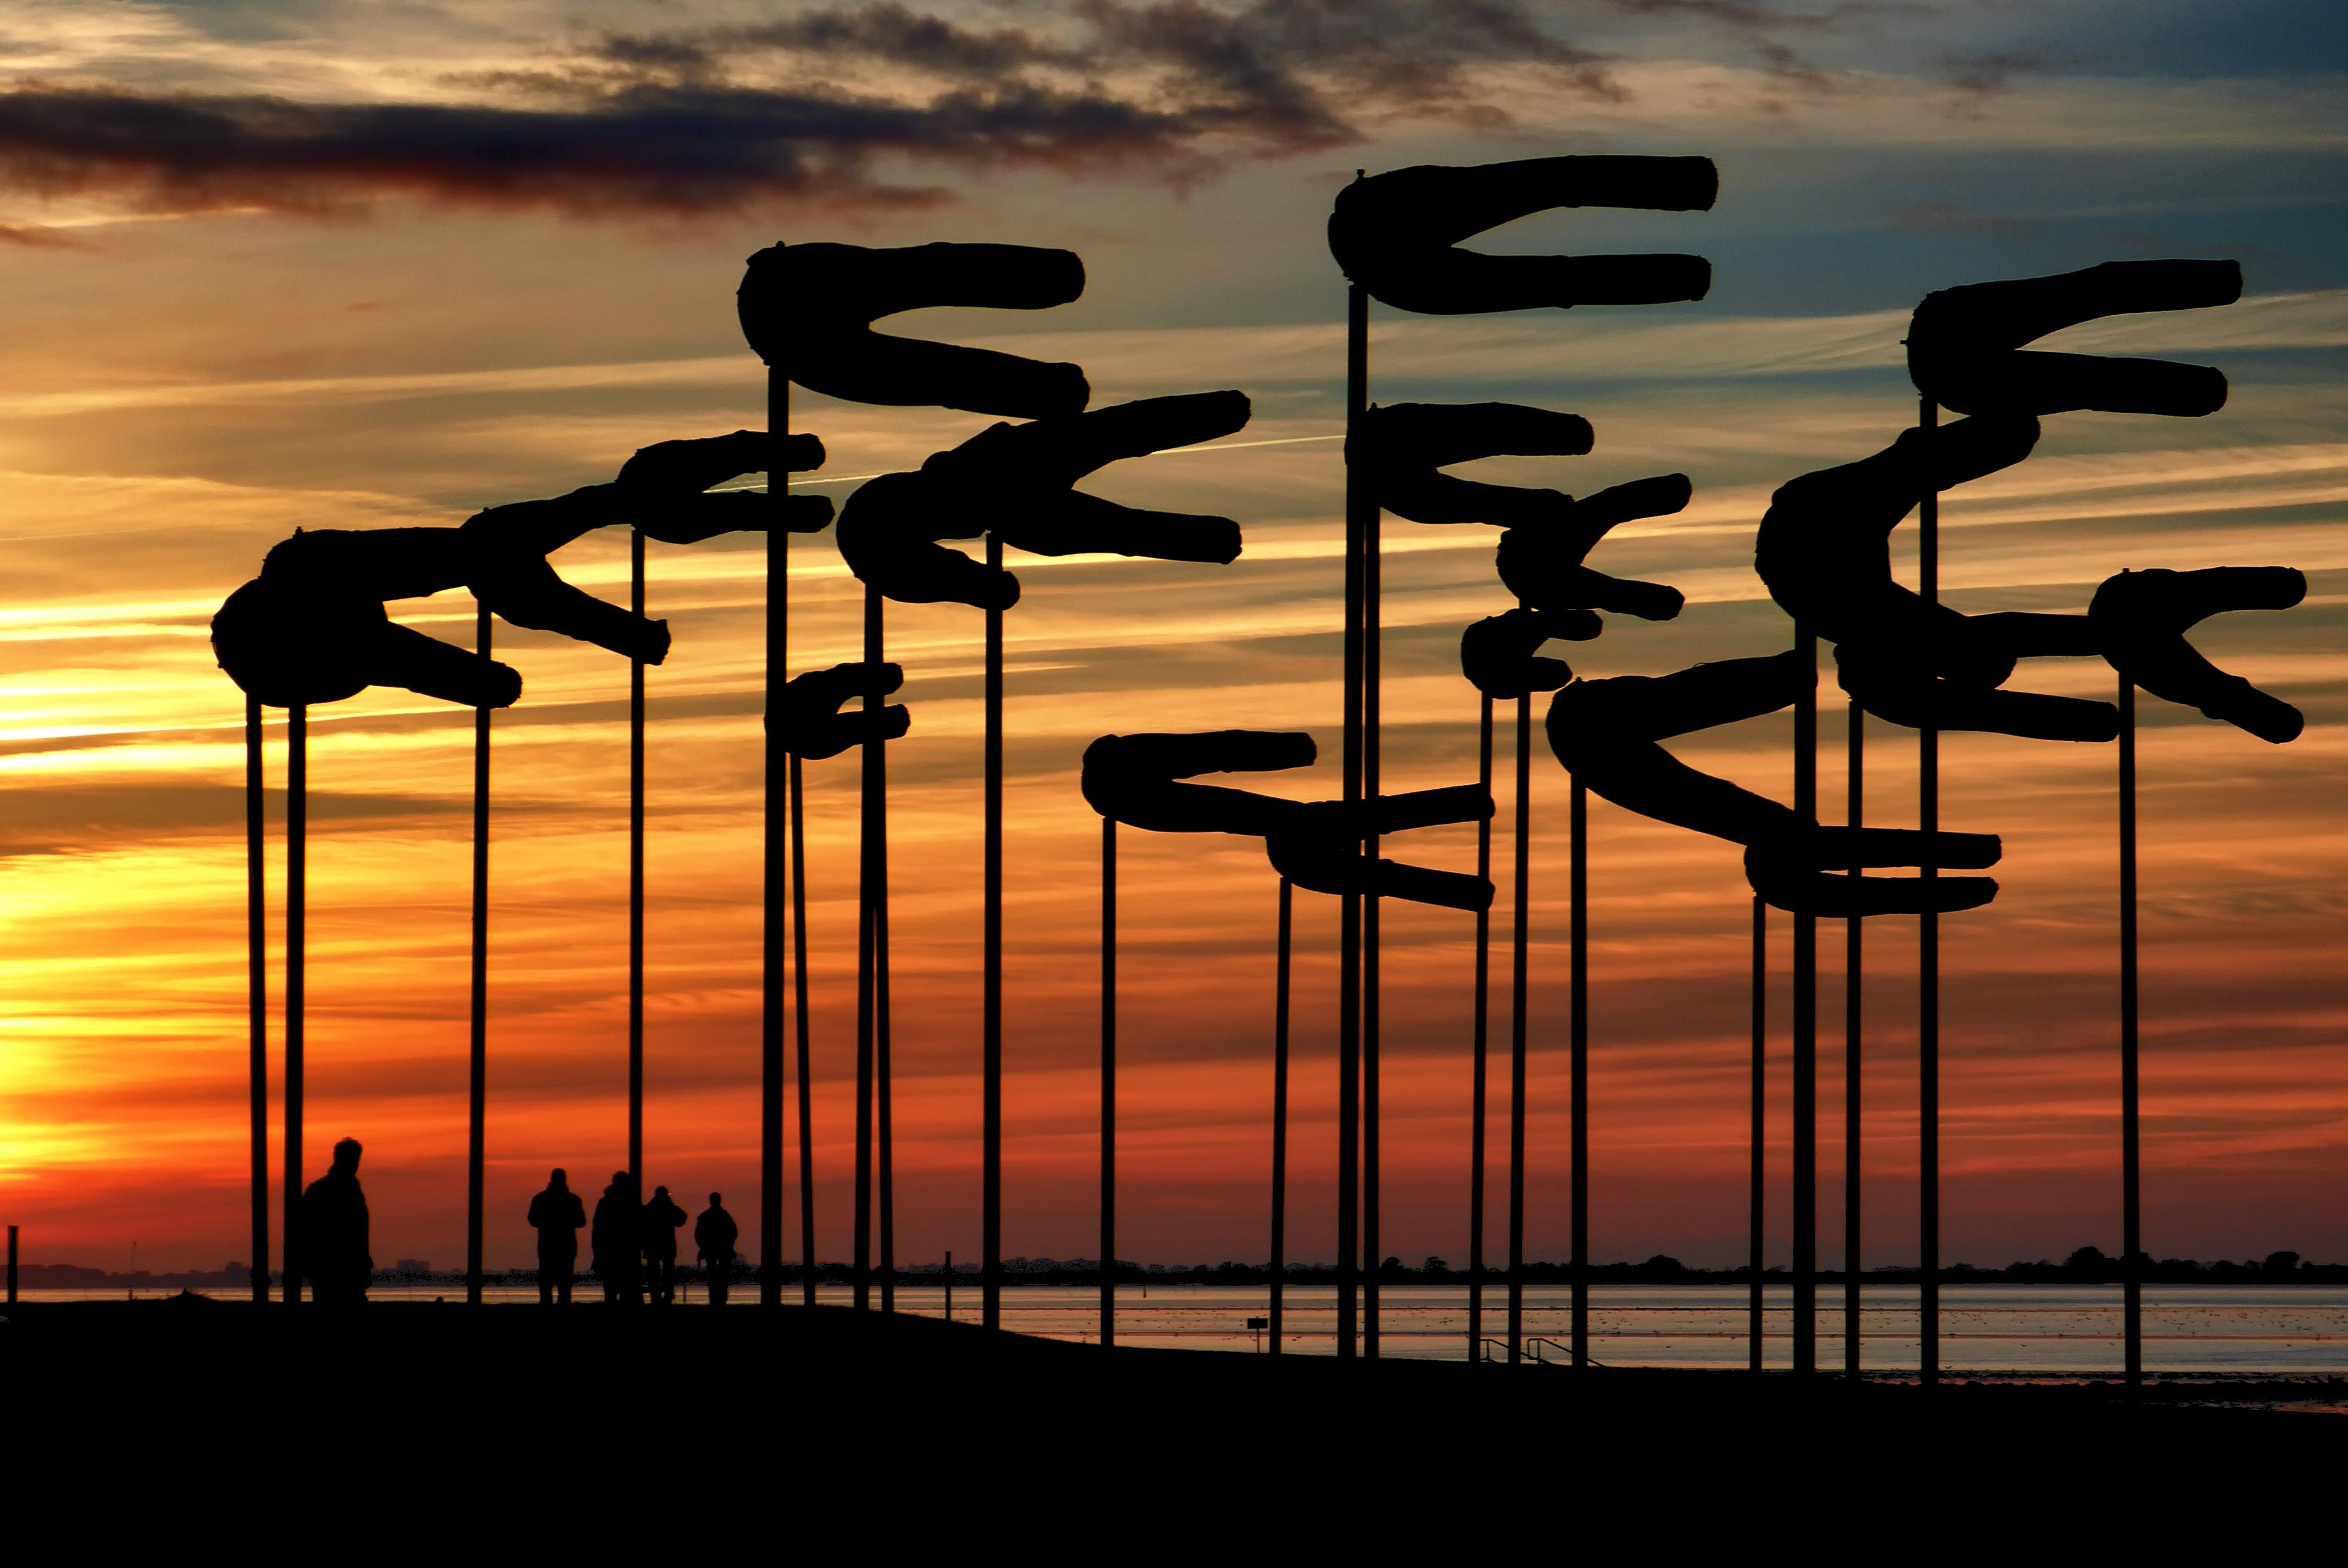 Silhouette Parasols Against Dramatic Sky during Sunset